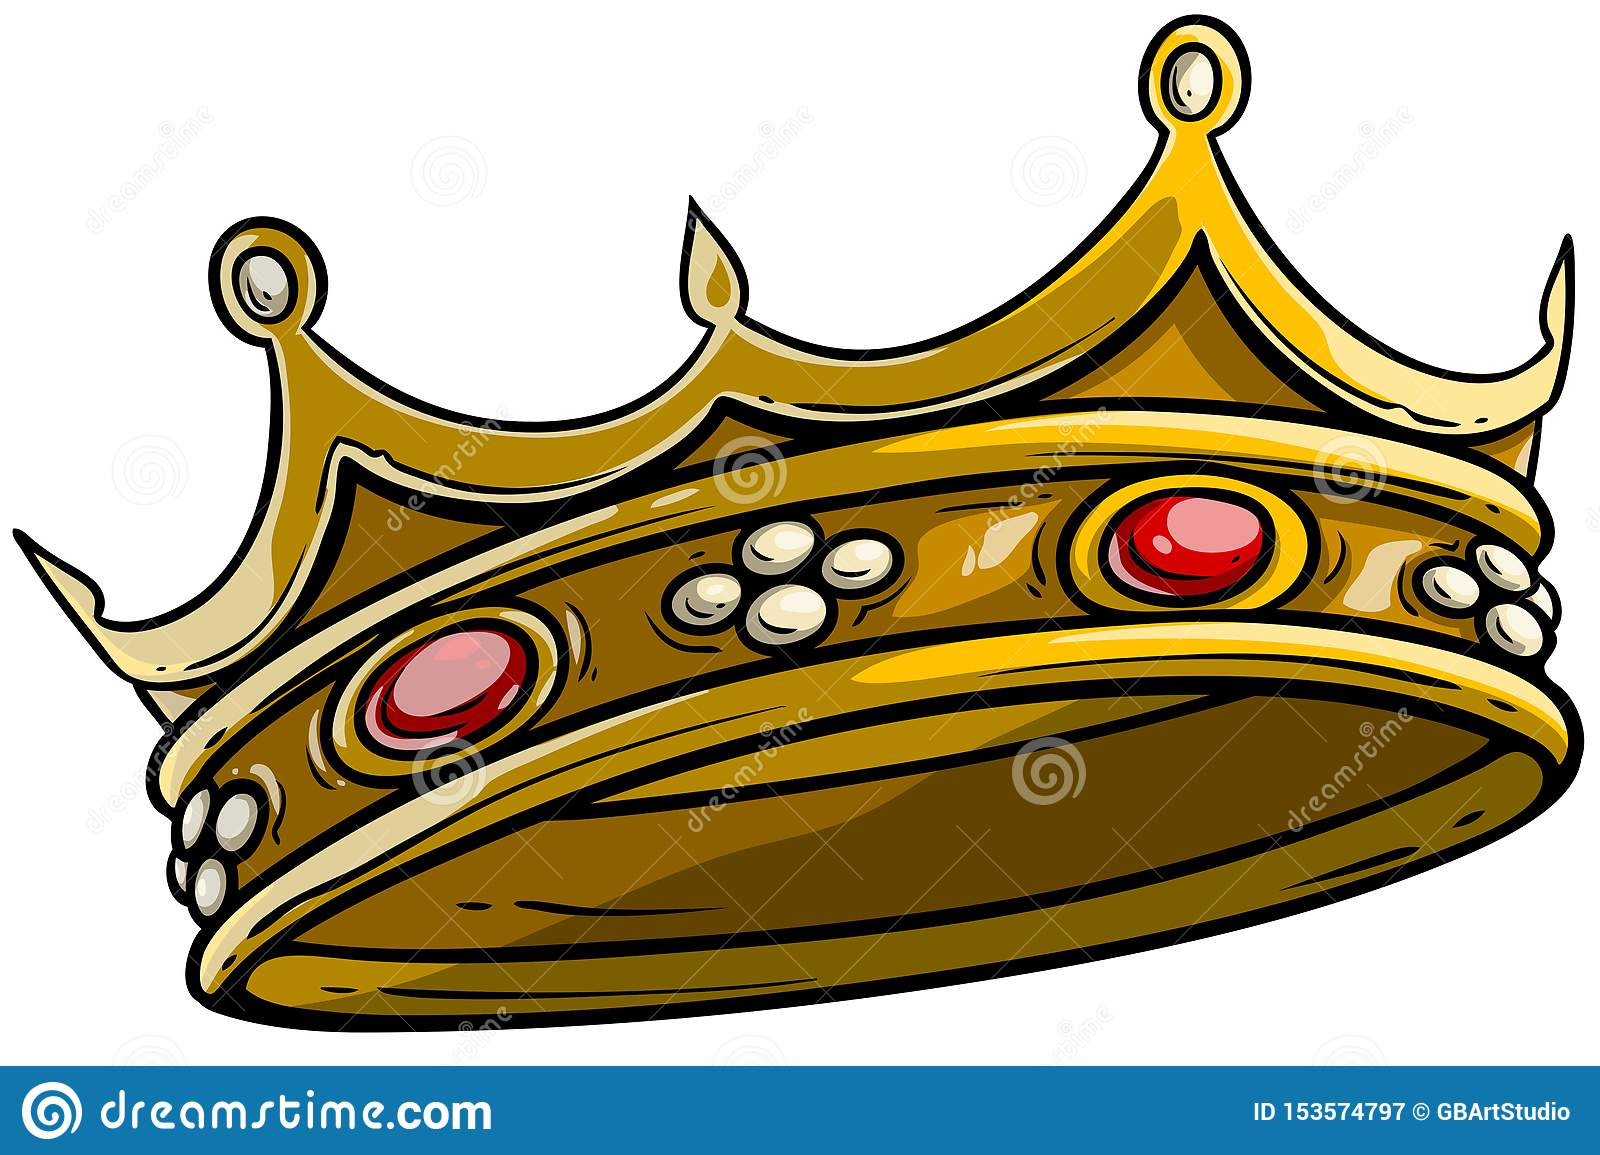 Cartoon Golden Royal King Crown Vector Stock Vector Illustration Of Precious Queen 153574797 Gold king crown vector ai, queen crown illustrator, crown logo design, princess tiara clipart vector images. https www dreamstime com cartoon golden royal king crown vector diamonds gems isolated white background icon vol image153574797